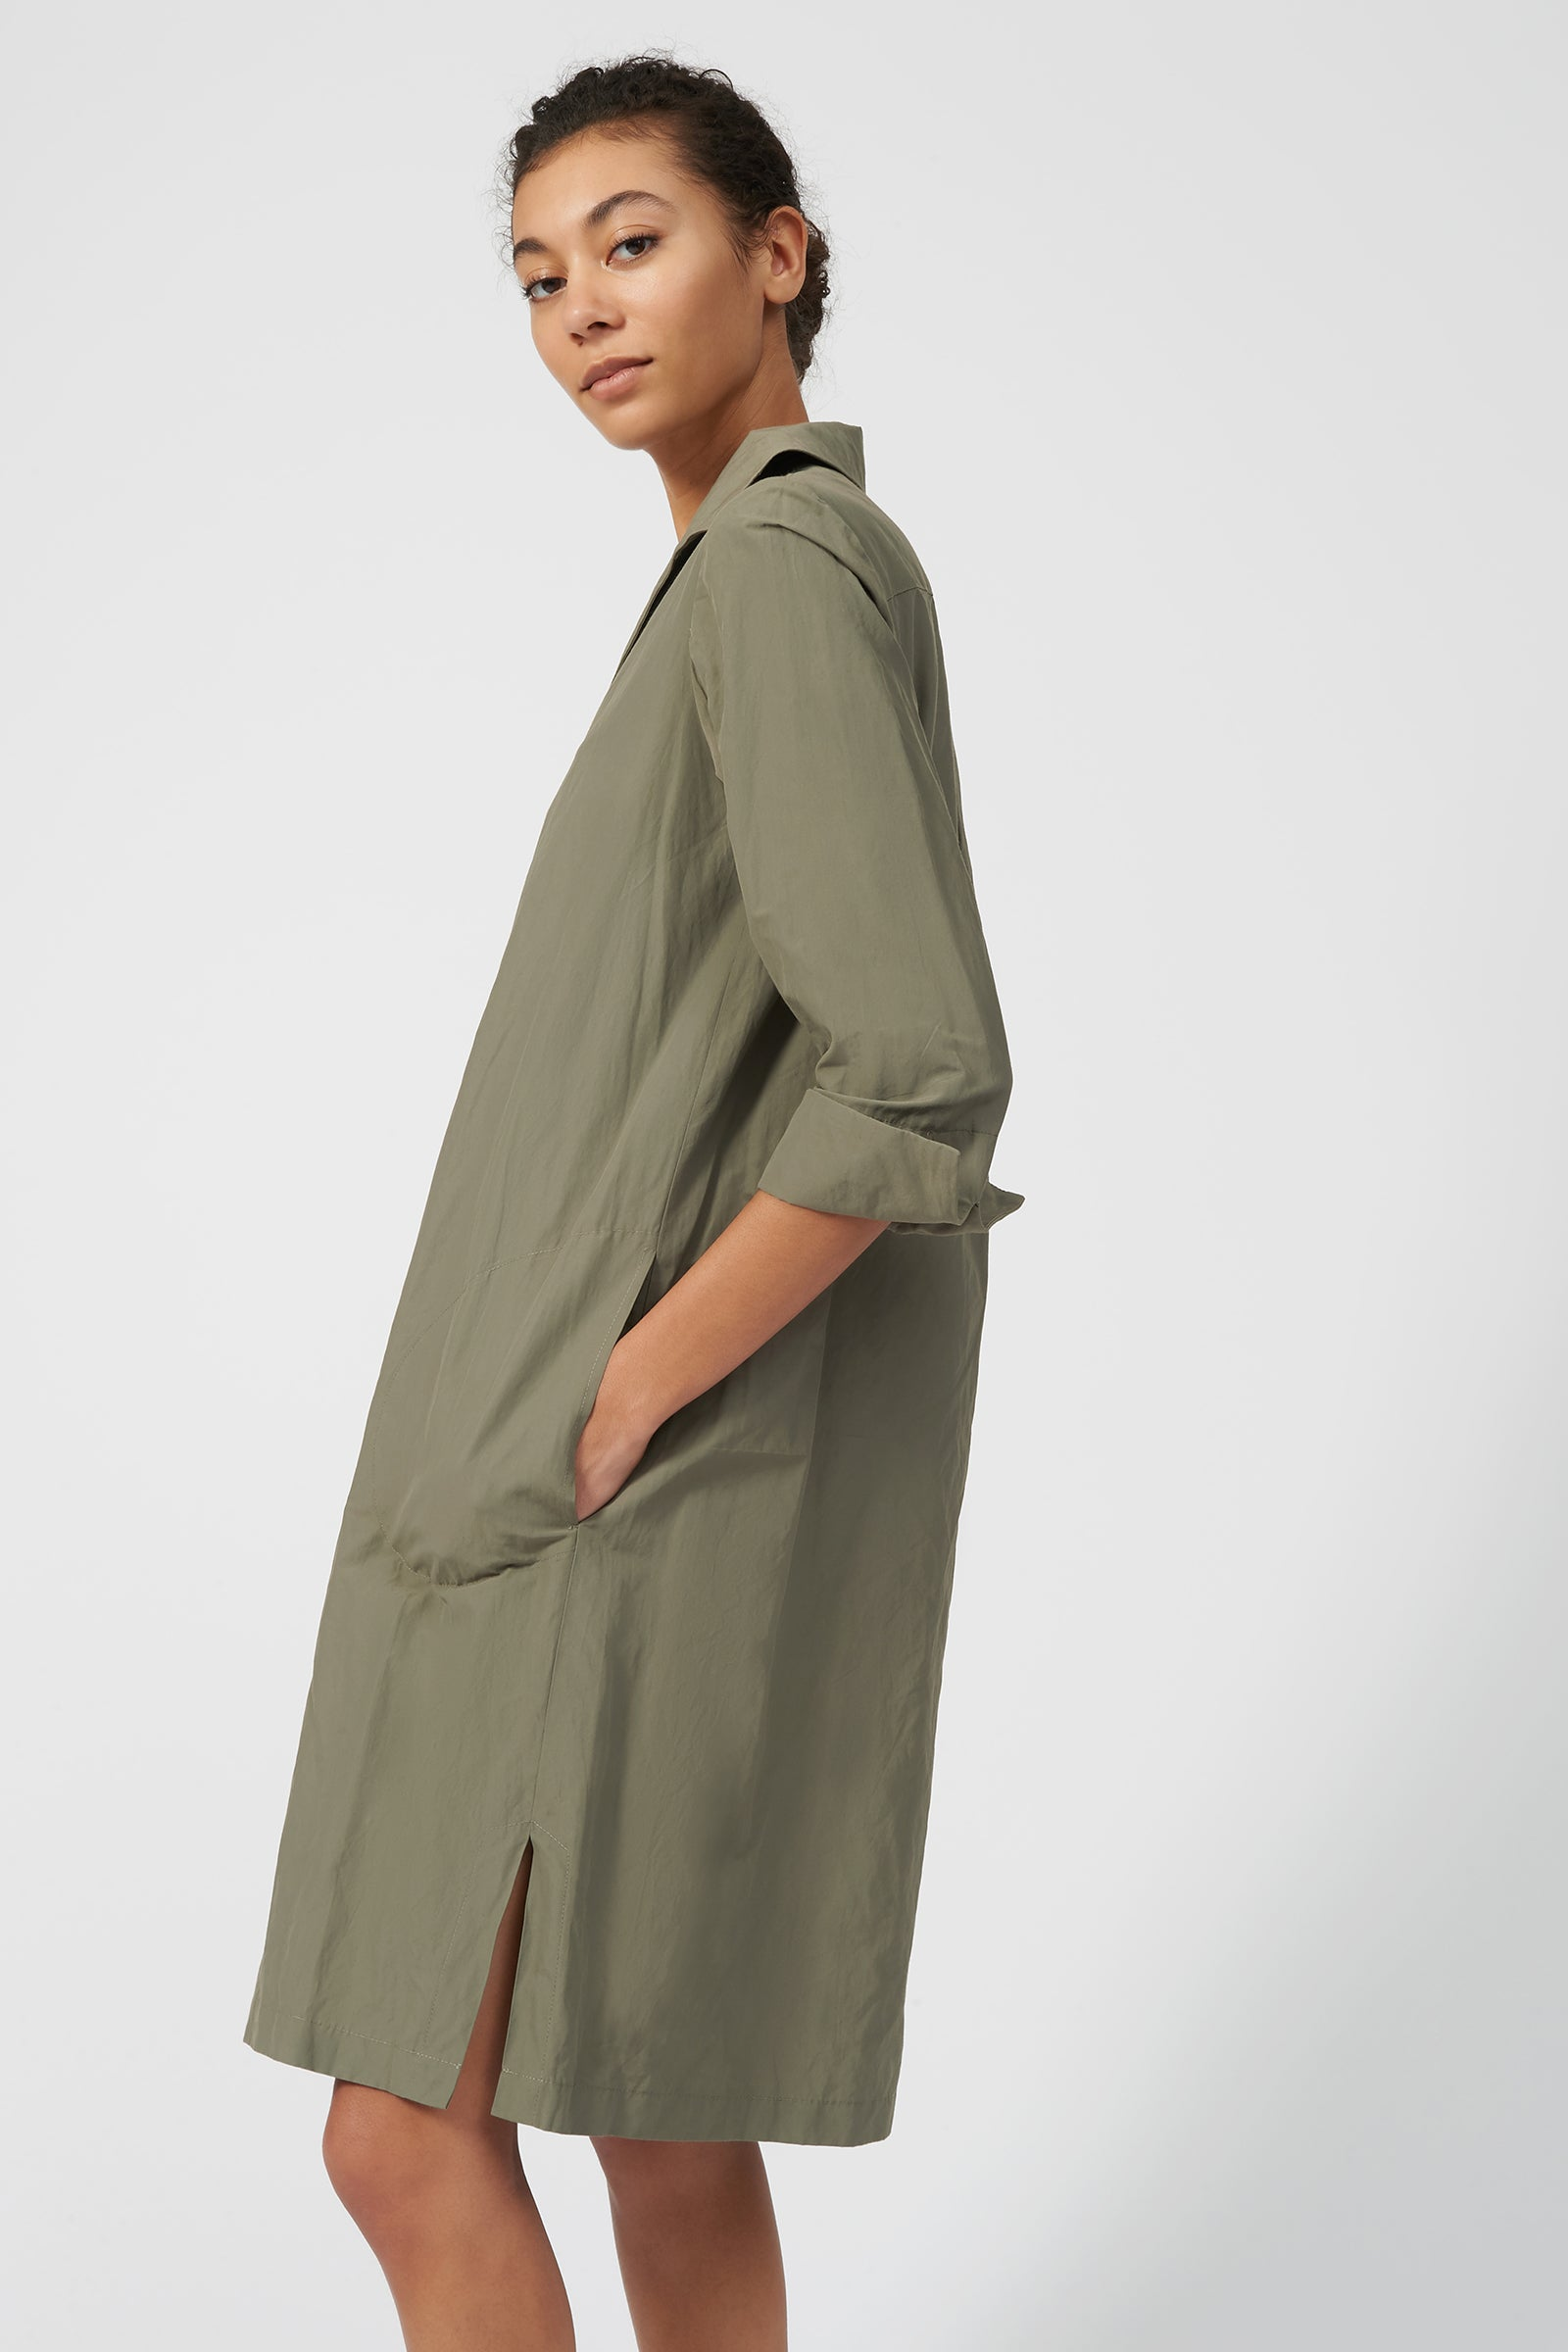 Kal Rieman Collared V Neck Dress in Olive on Model Front View